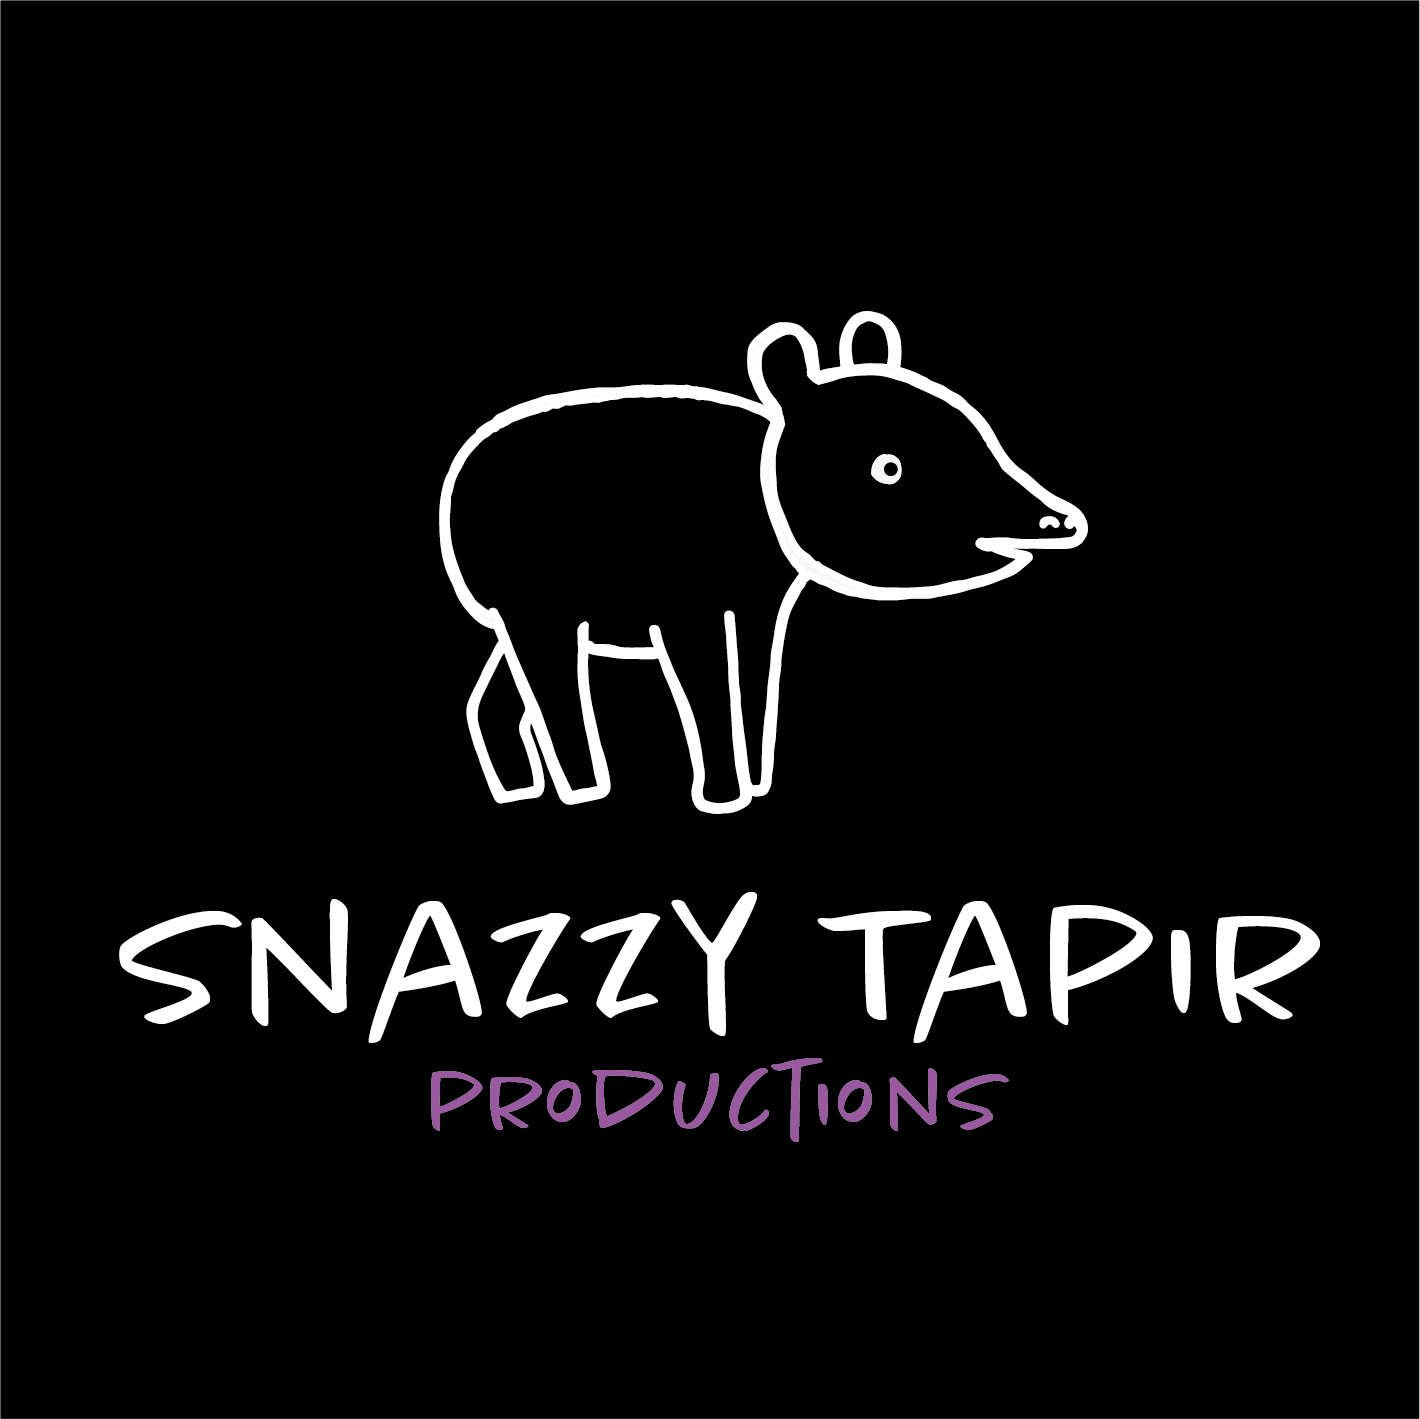 Snazzy Tapir Productions